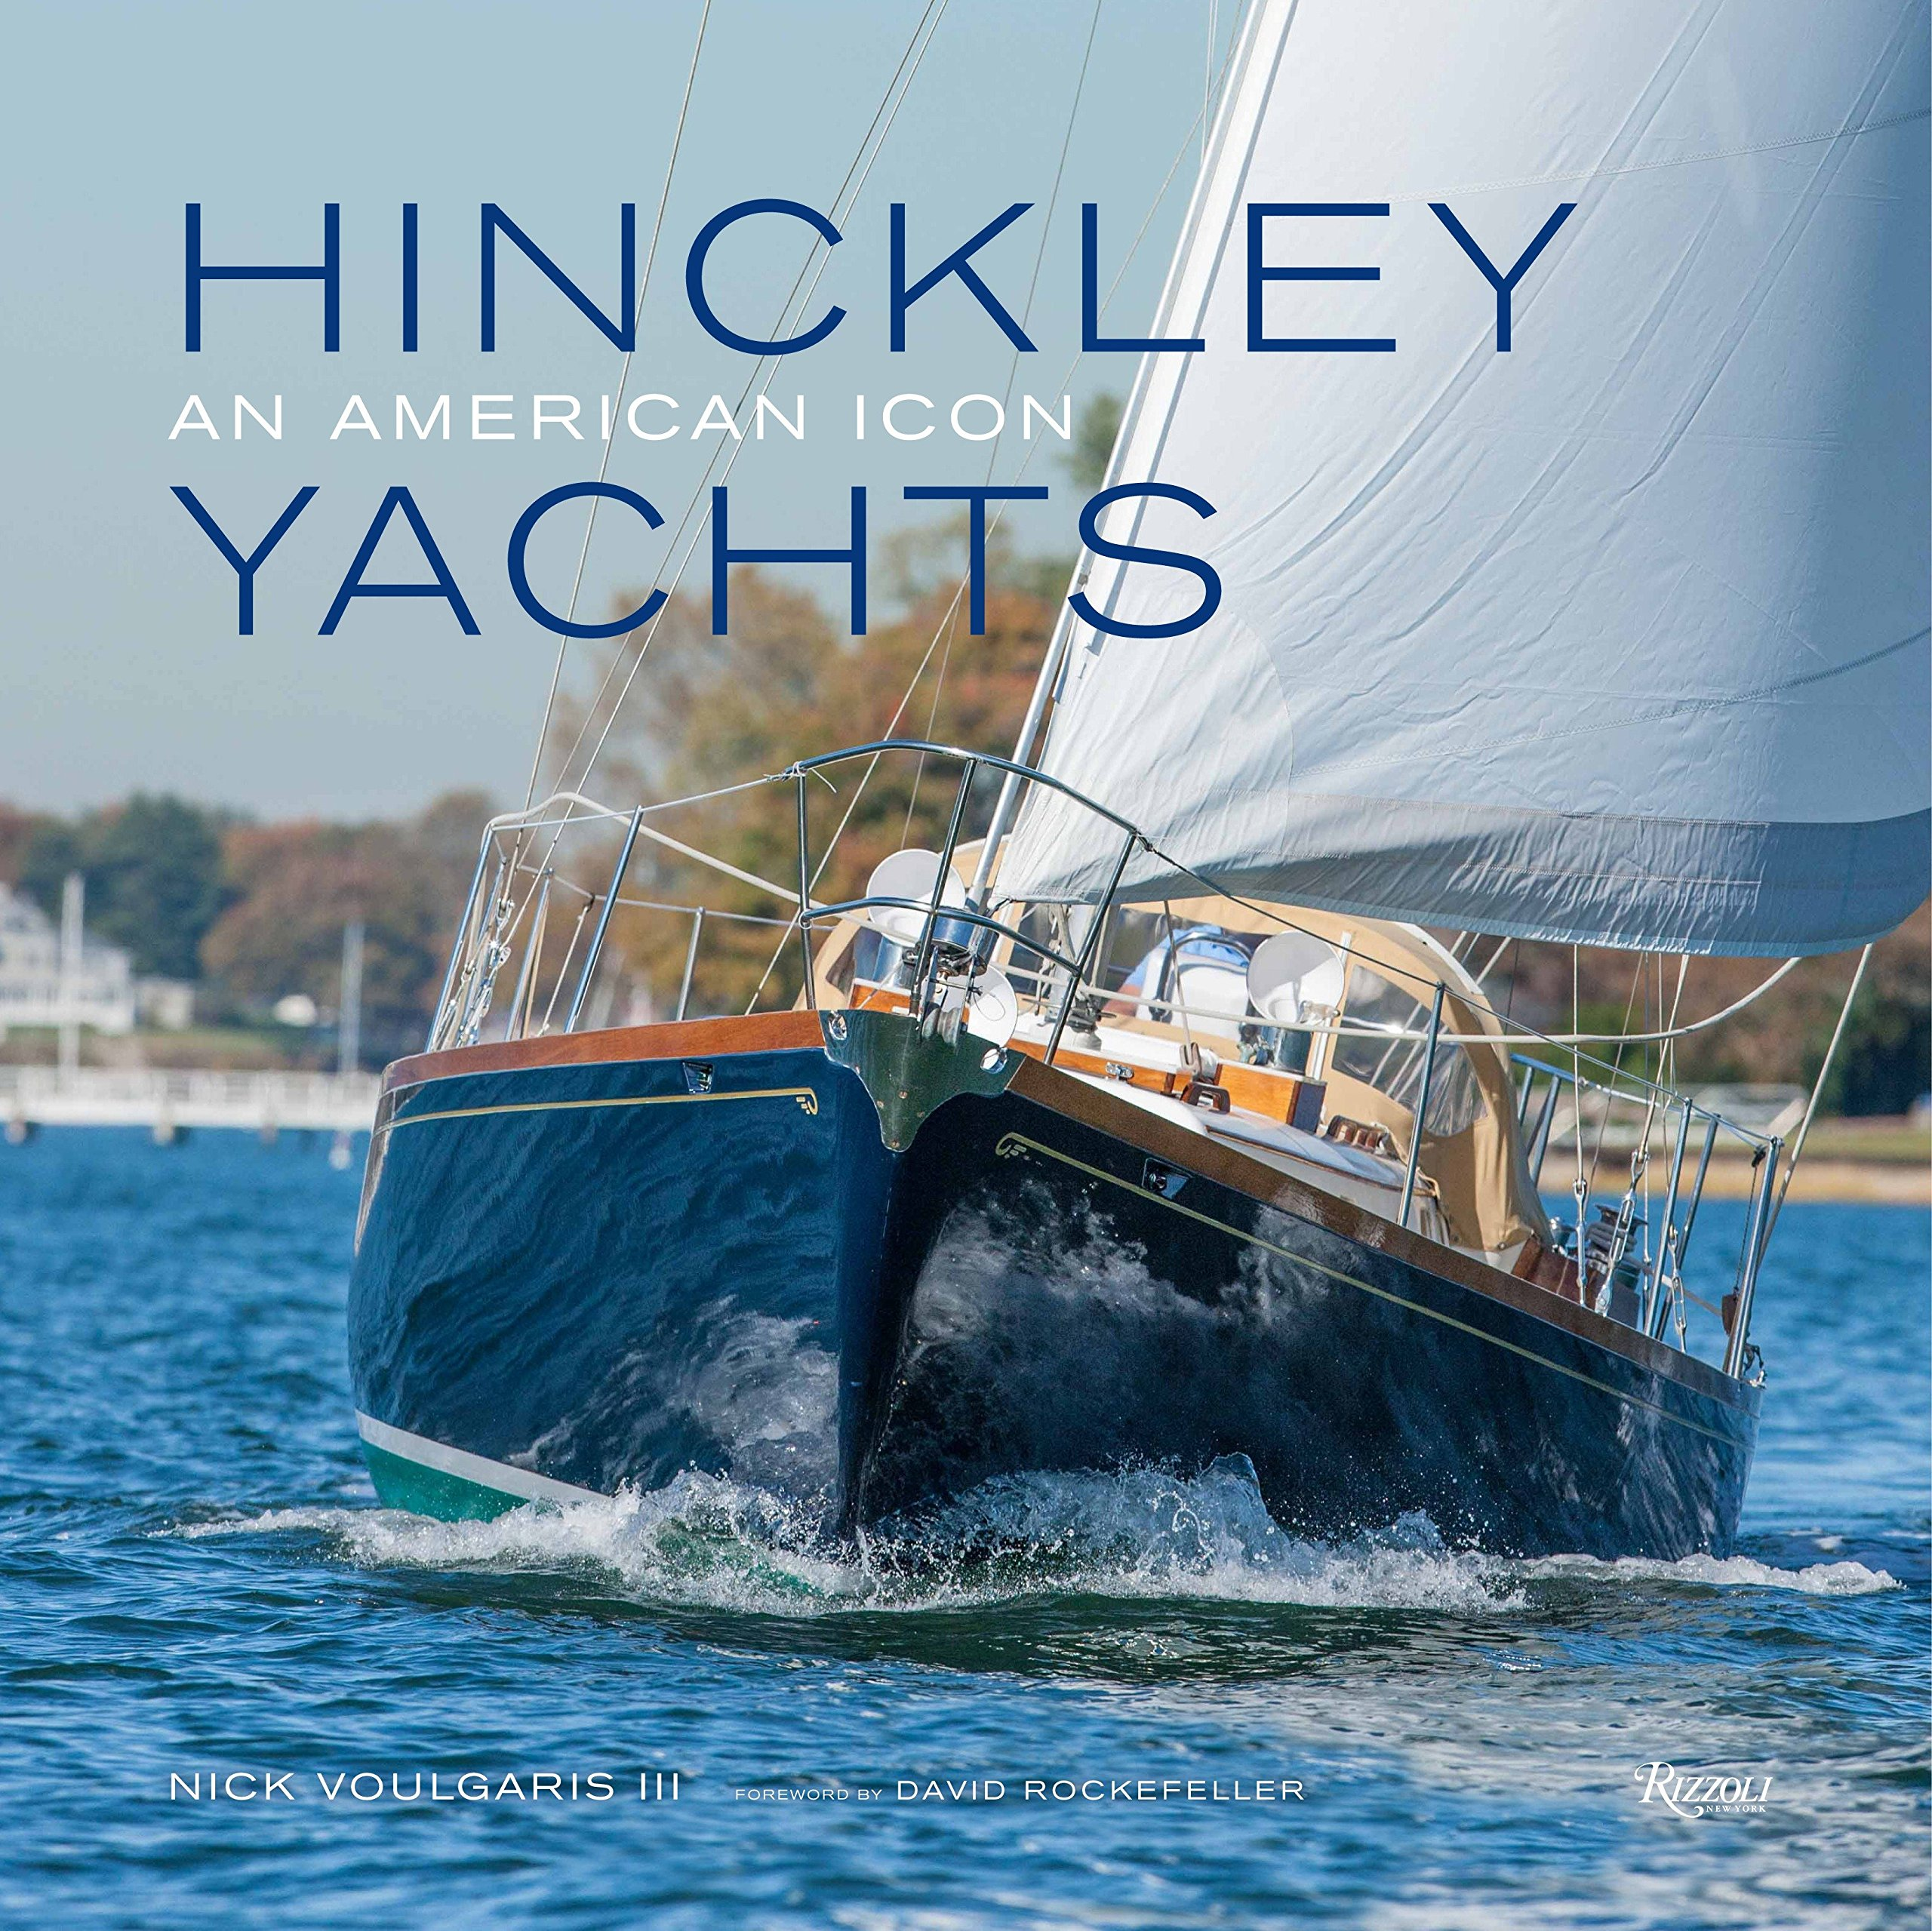 Hinckley Yachts: An American Icon by Rizzoli